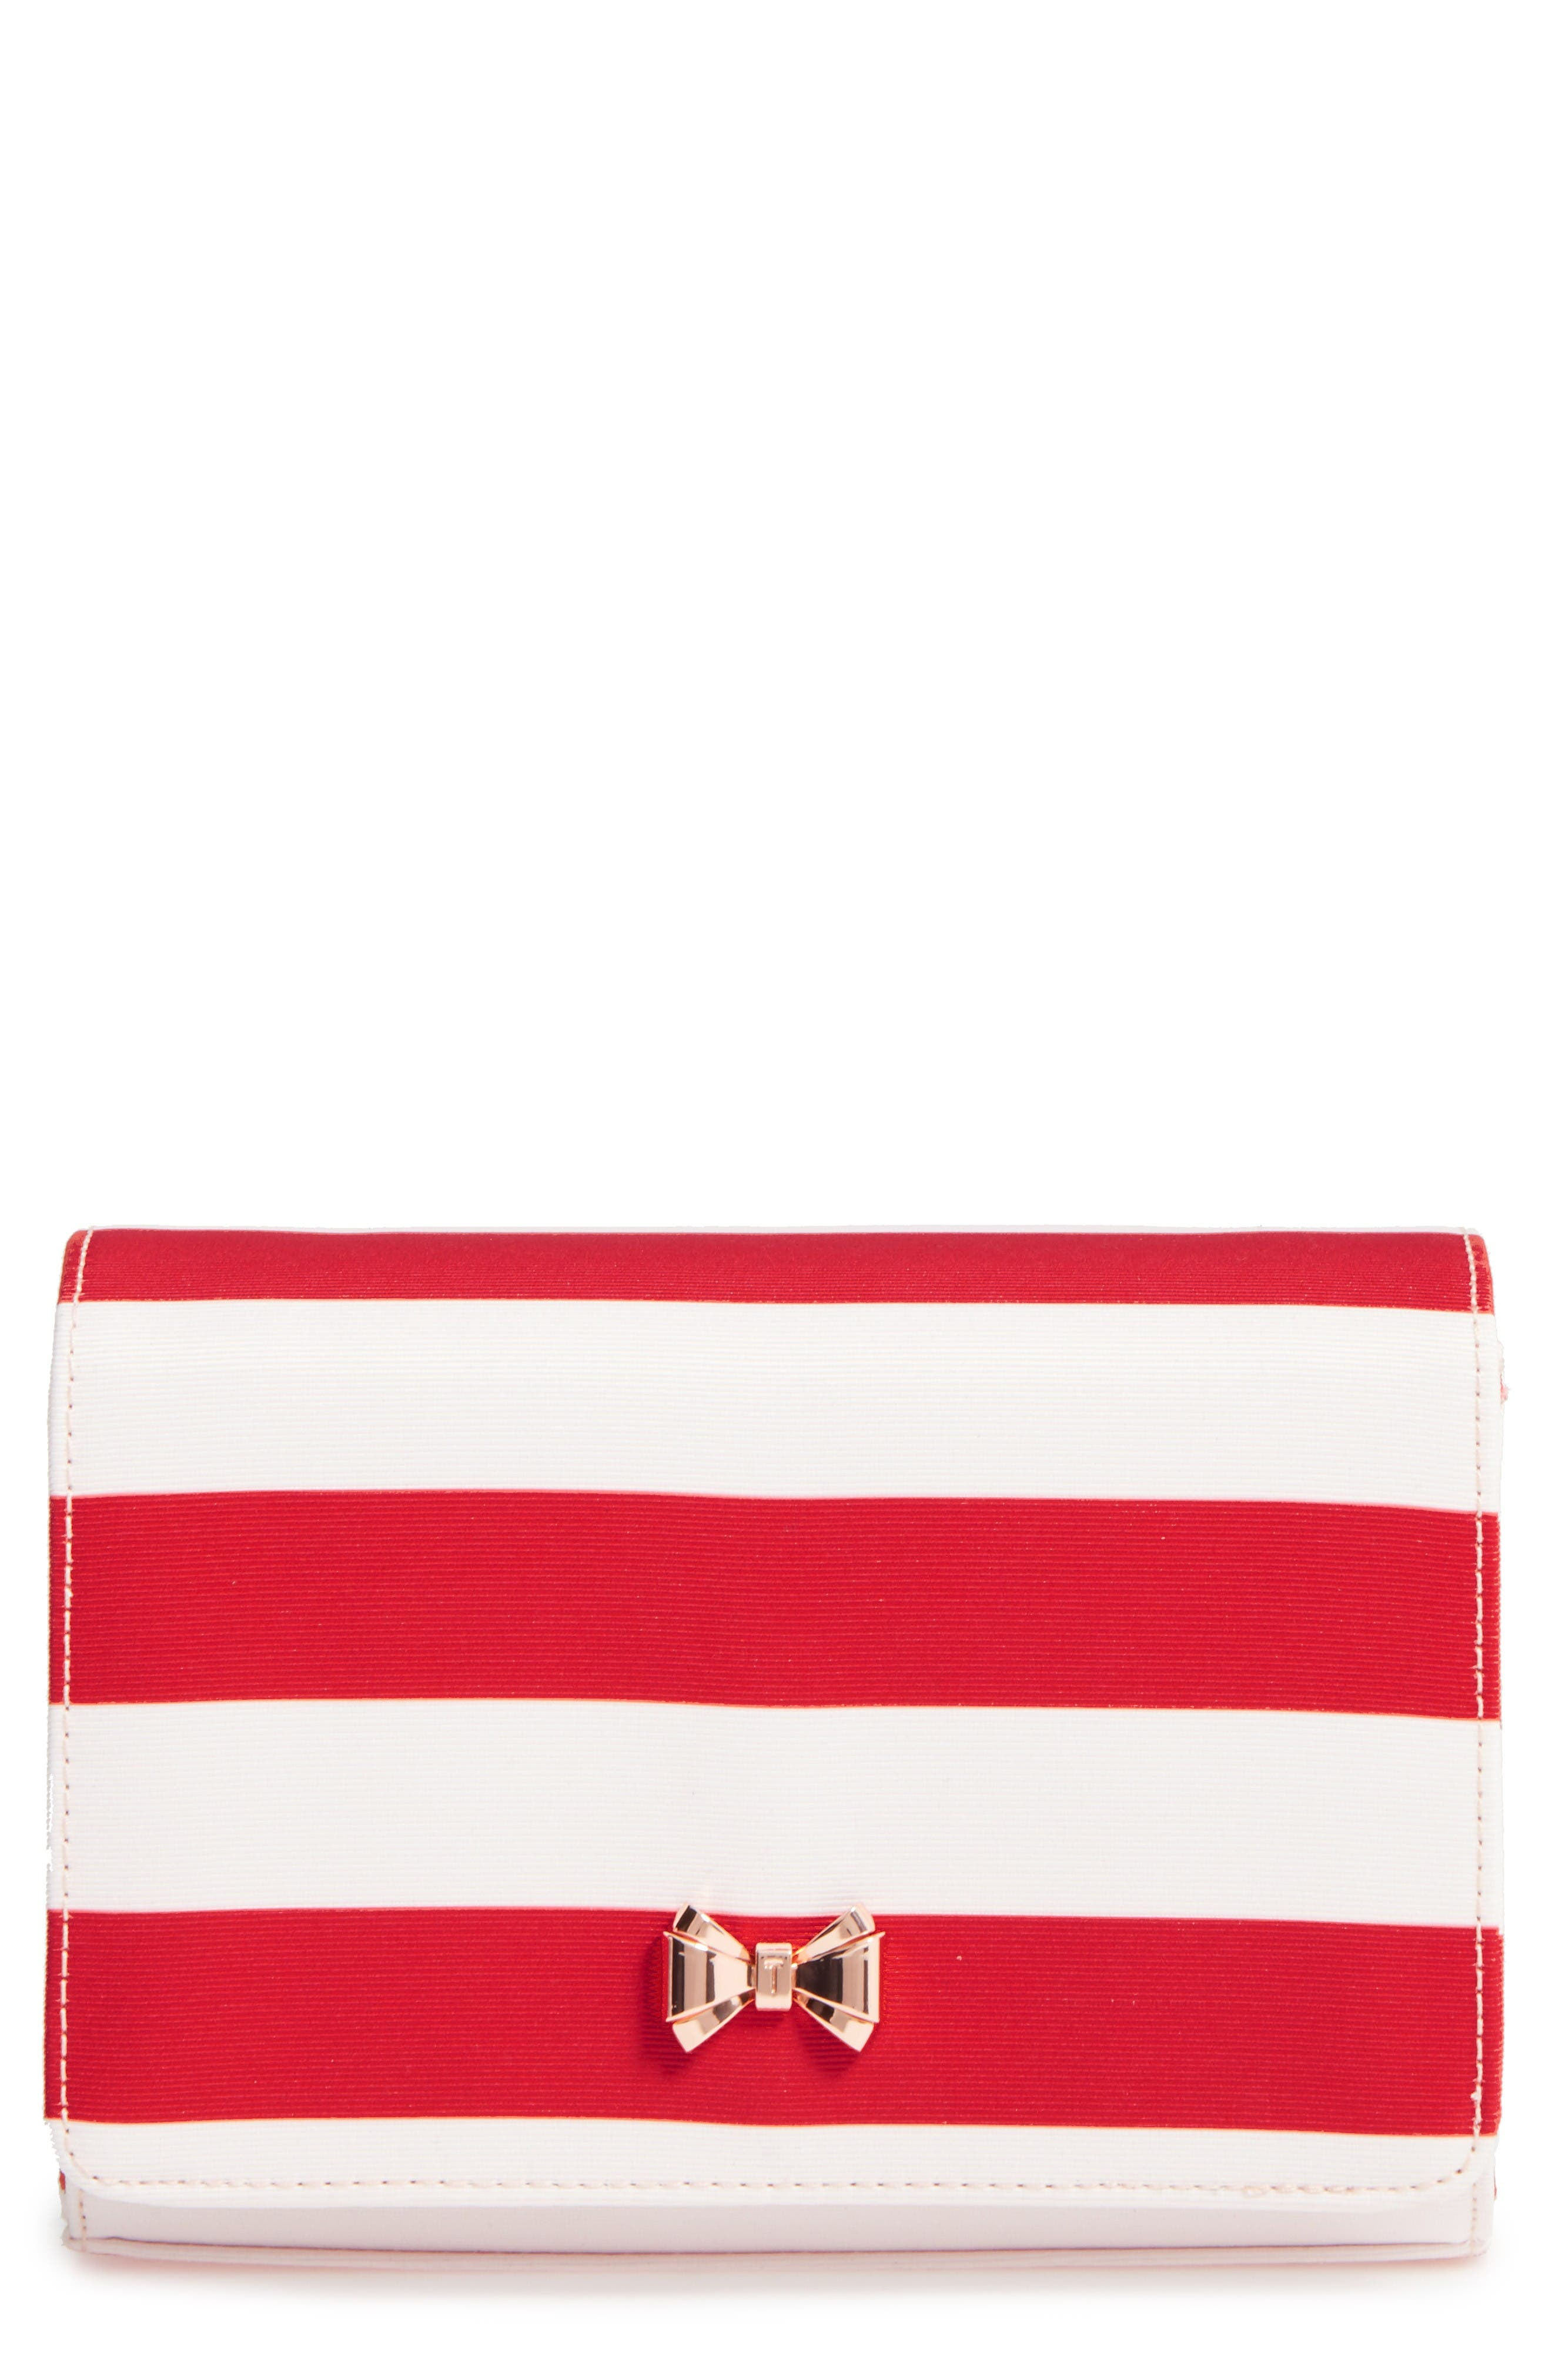 Main Image - Ted Baker London Pier Stripe Clutch